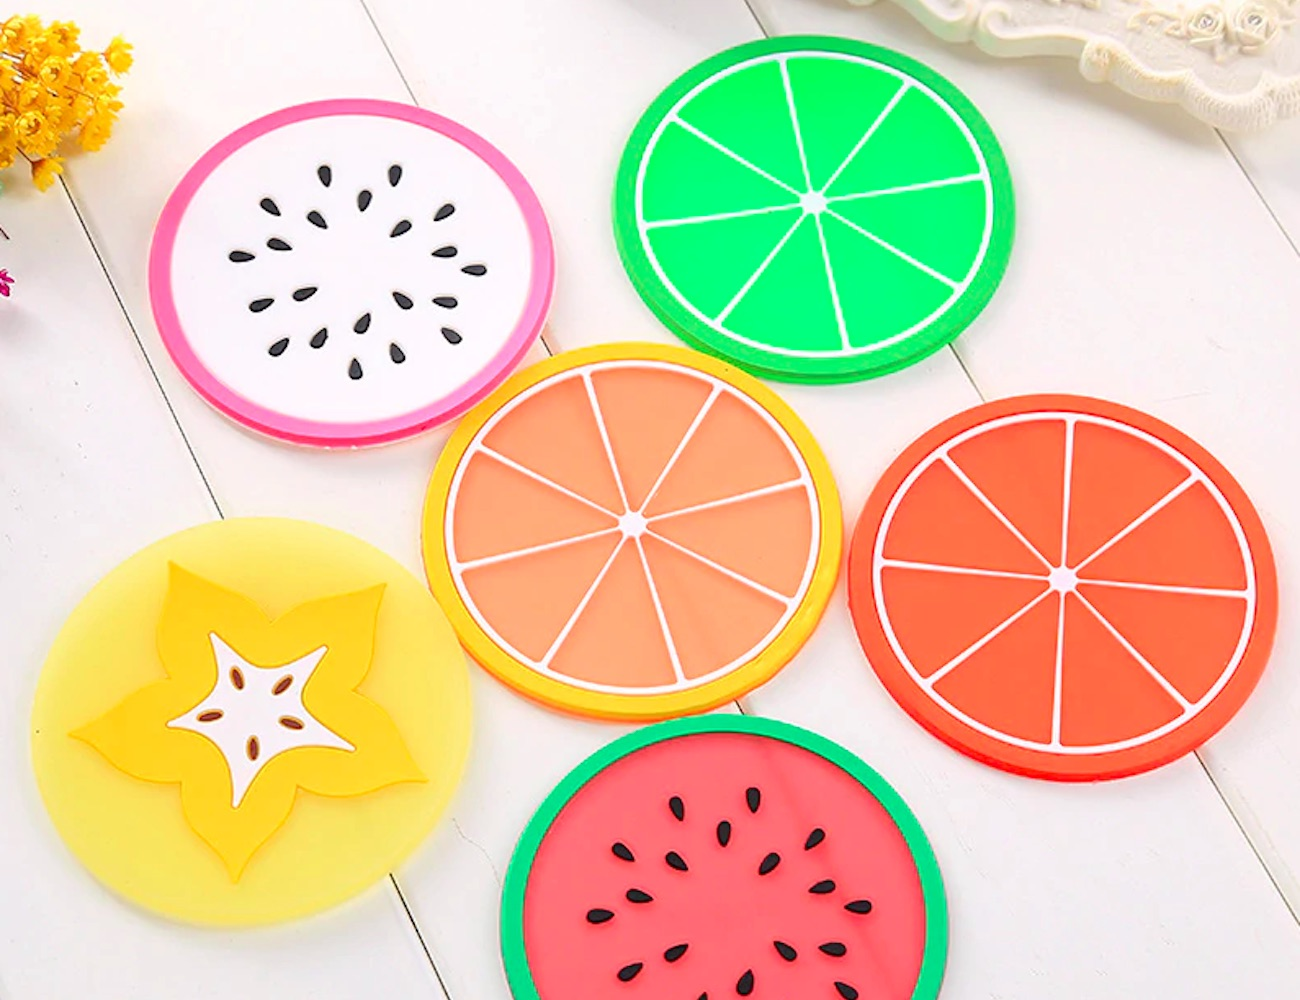 Kawaii Assorted Fruit Silicone Coasters are a splash of flavor